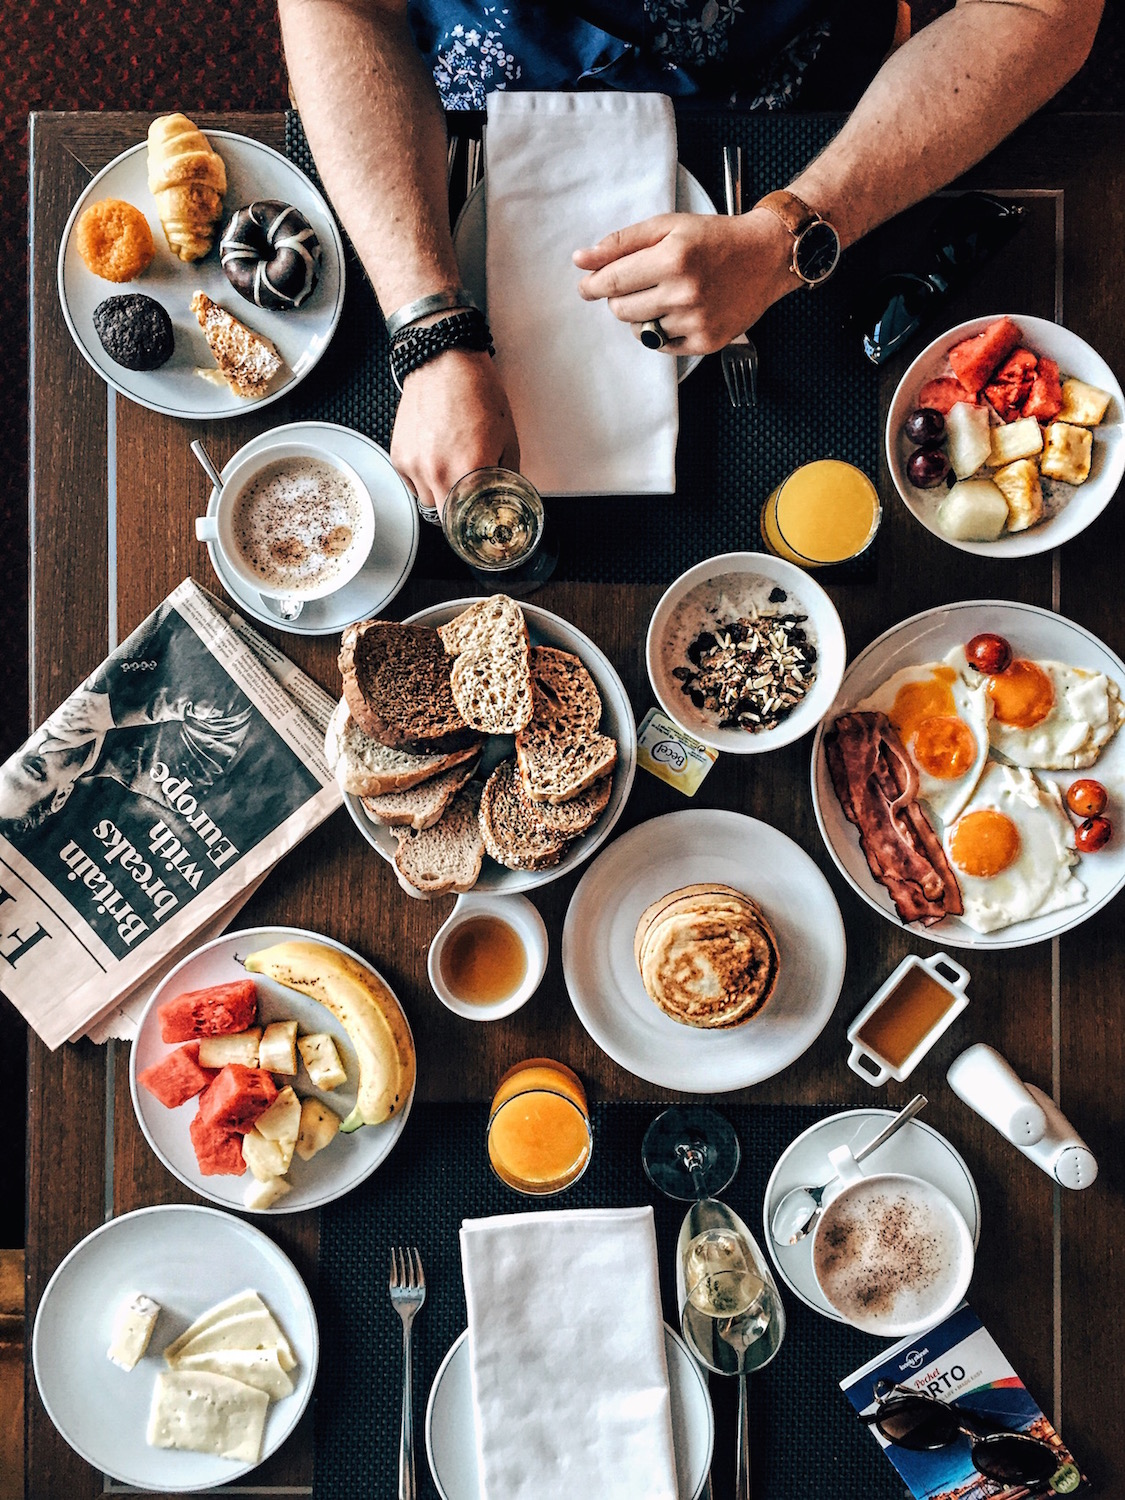 Travel-Diary_A-Long-Weekend-In-Porto_by-Meanwhile-in-Awesometown_Mens-Fashion-and-Lifestyle-Blog-from-Austria_Breakfast-at-Sheraton-Porto